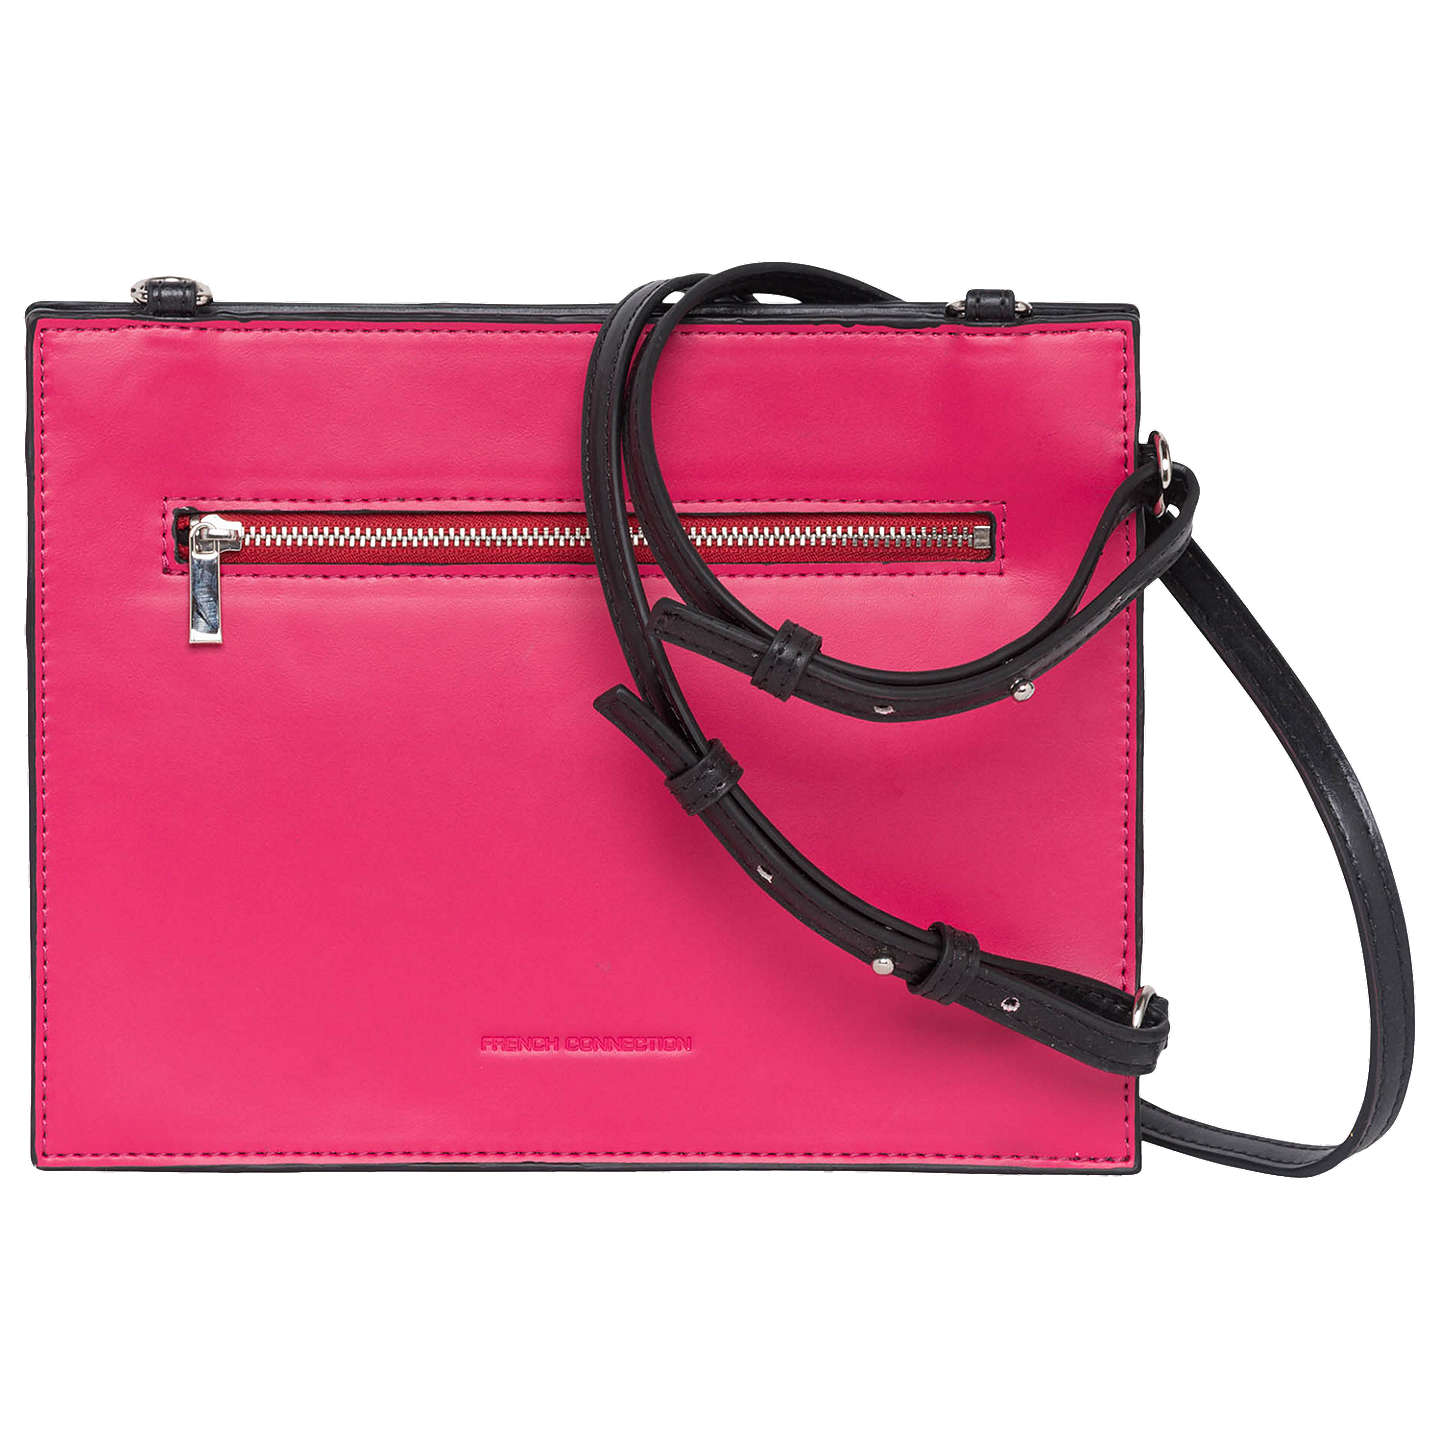 Upside Down Crossbody Bag - Black/magenta French Connection 9L2C3B